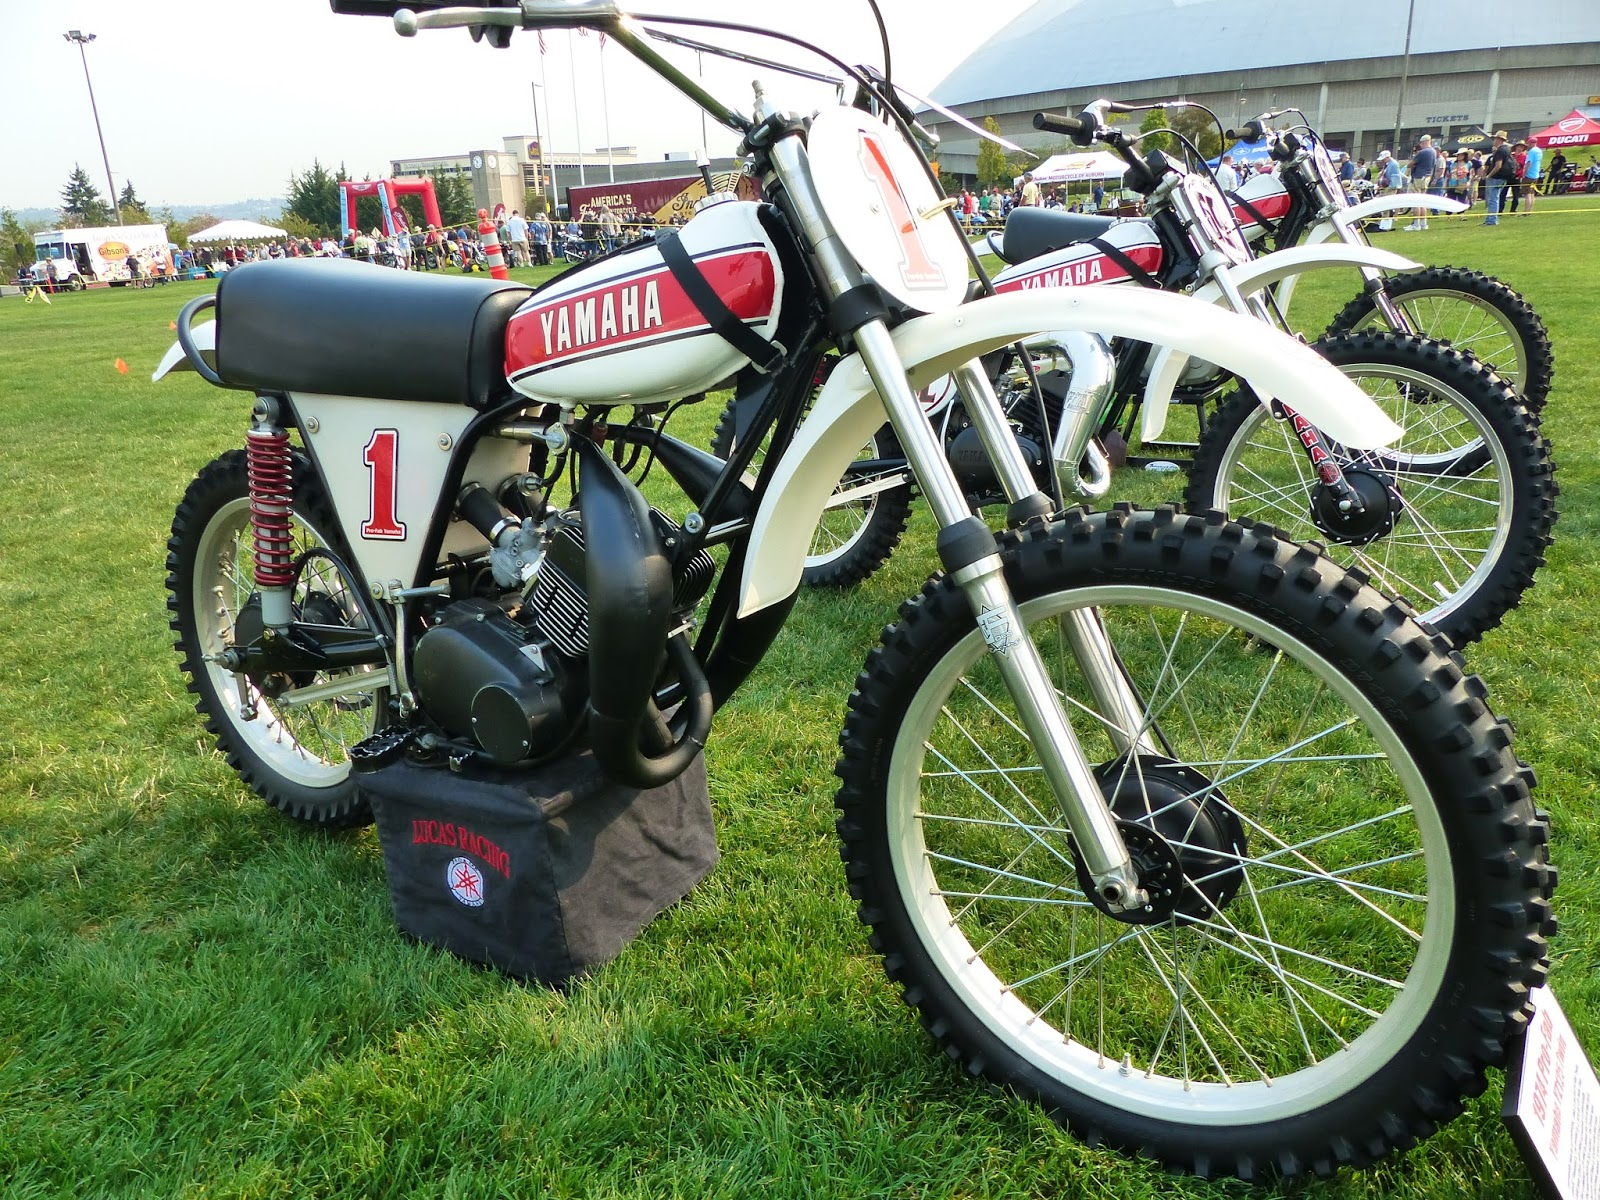 oldmotodude 1974 pro fab framed yamaha yz125 twin yes twin on display at the meet 2015. Black Bedroom Furniture Sets. Home Design Ideas